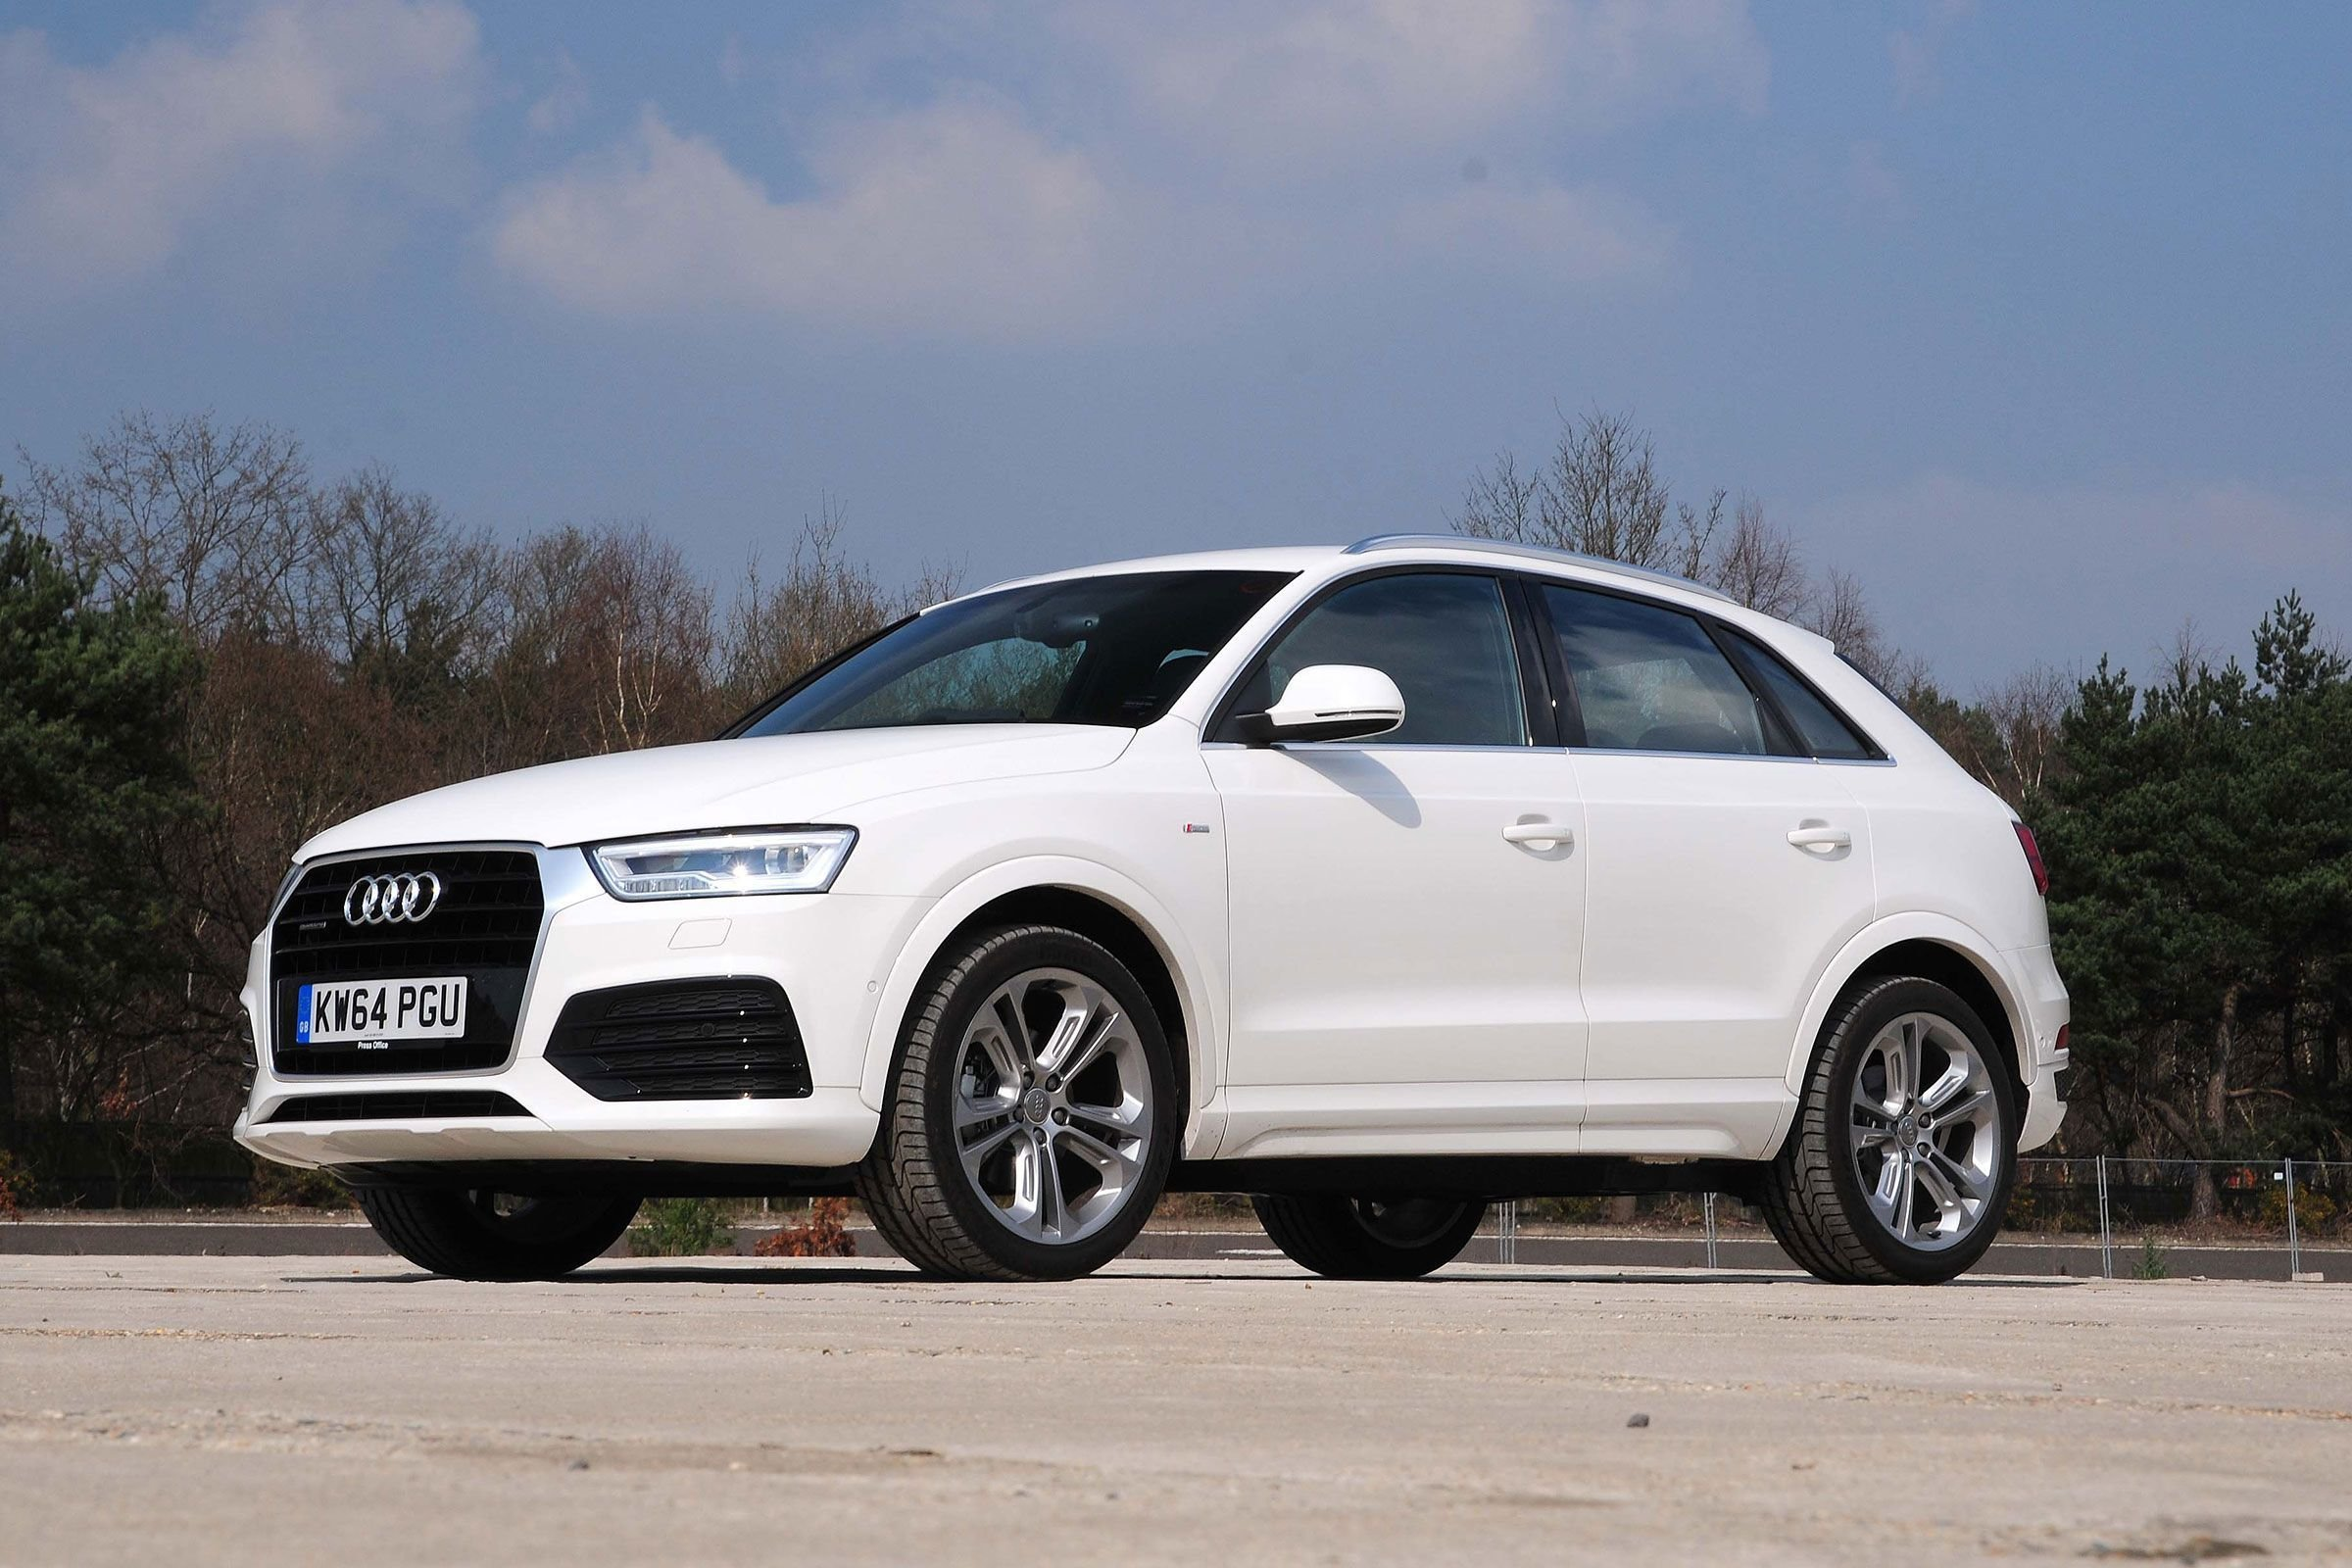 Latest White 2015 Audi Q4 Free Download Image About All Car Type Free Download